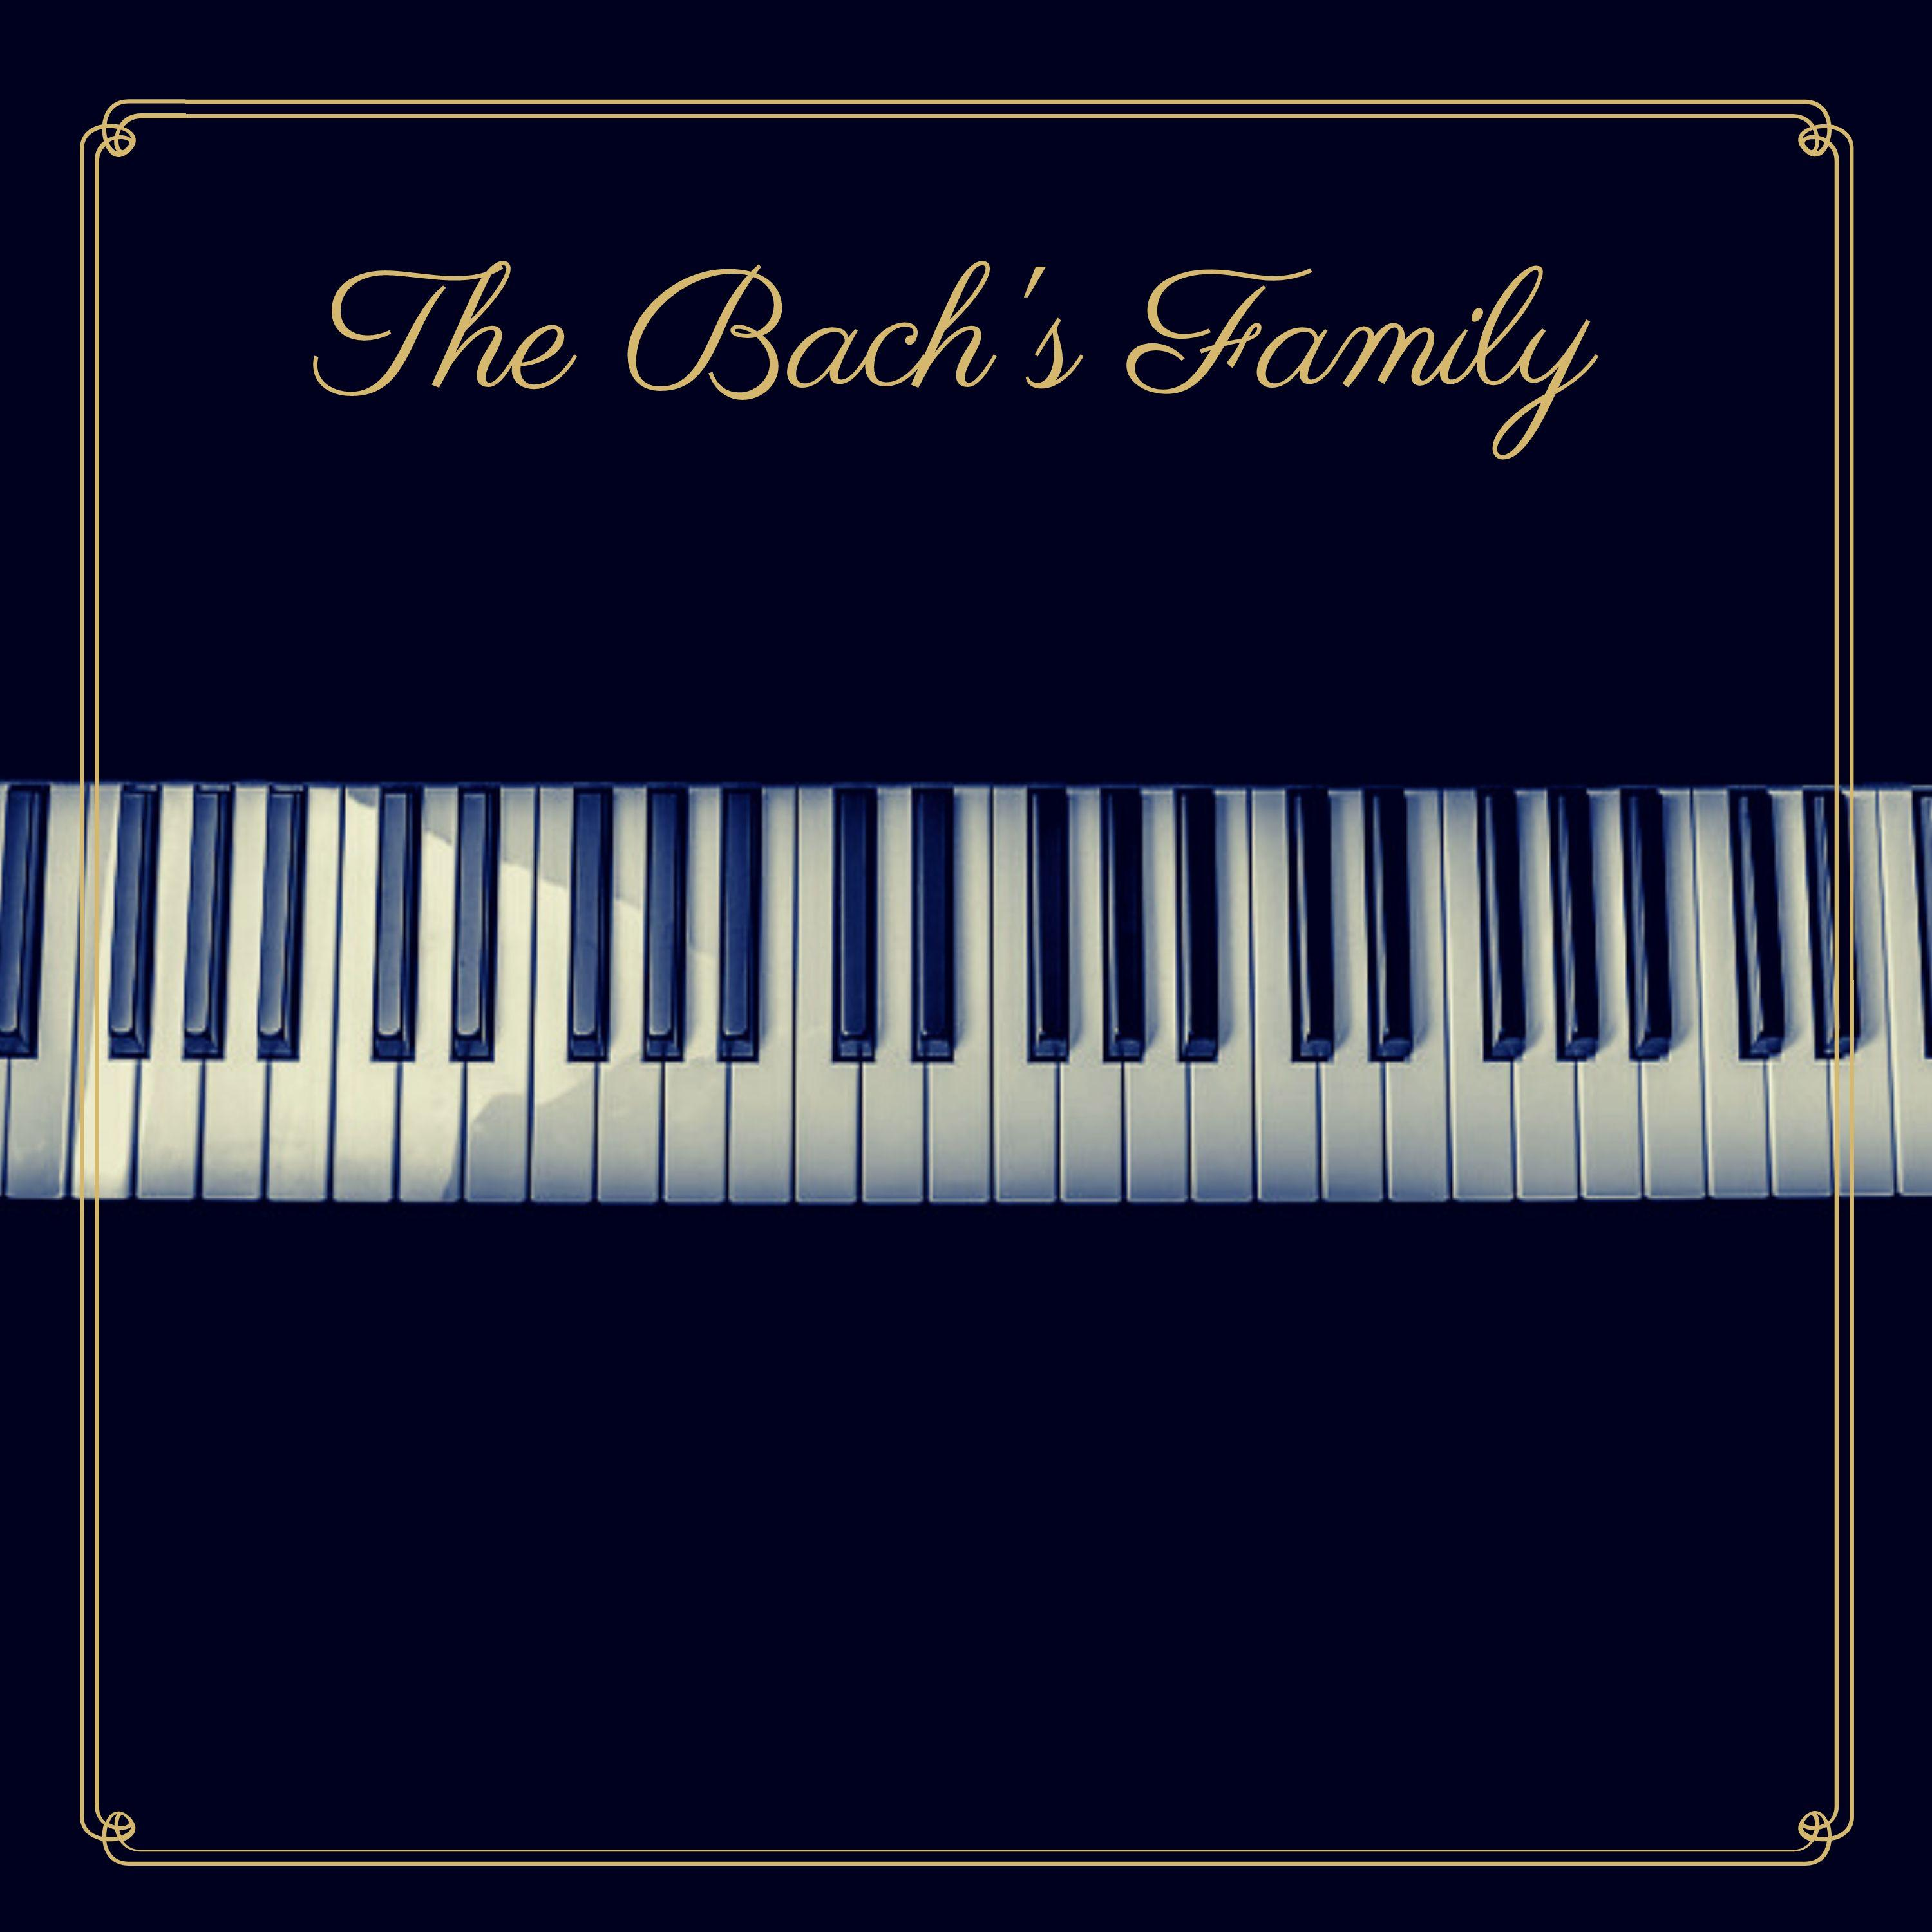 The Bach's Family